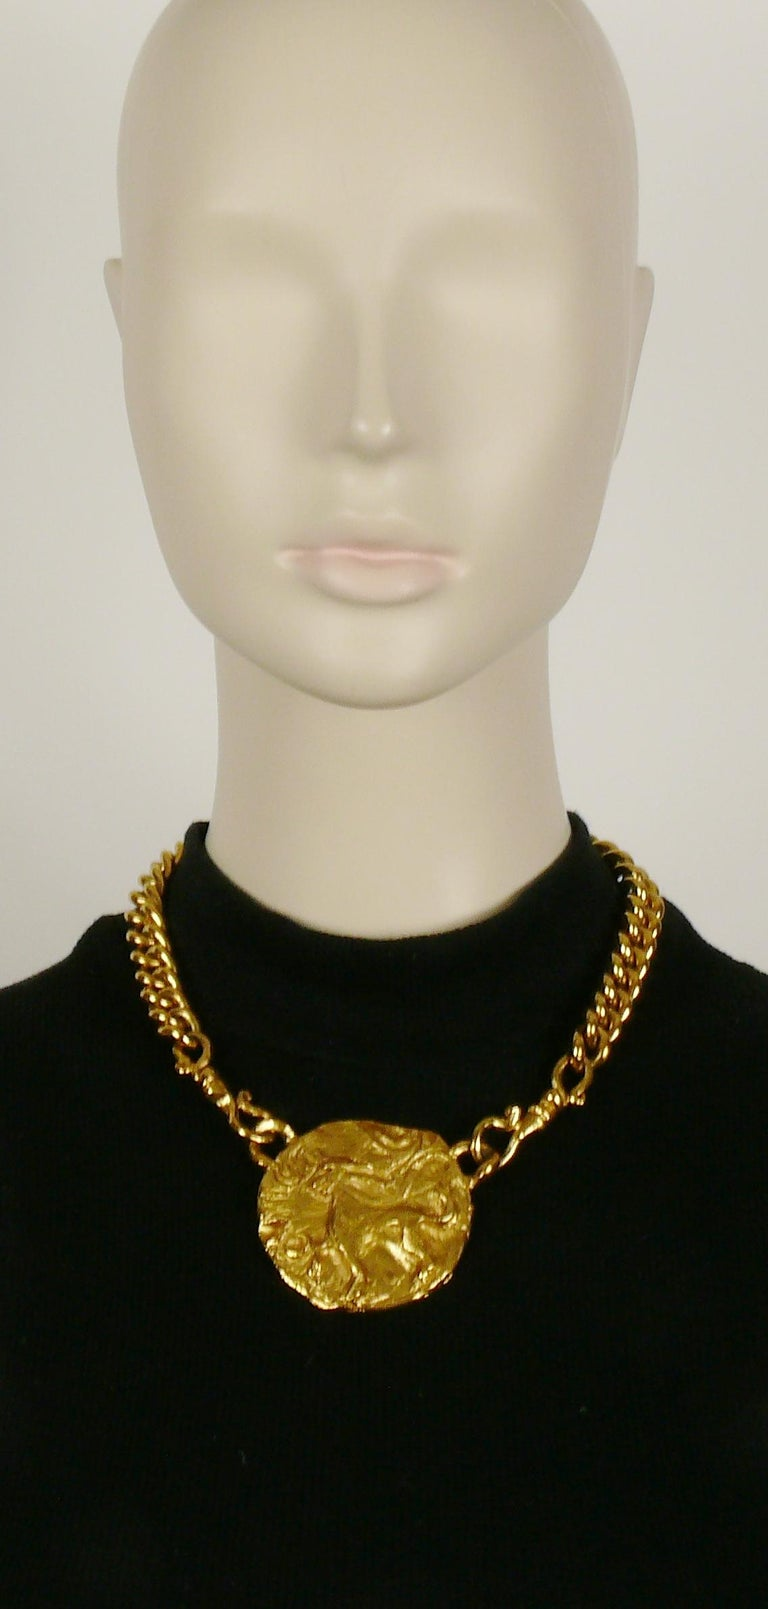 YVES SAINT LAURENT vintage gold toned chunky chain necklace featuring a raised and textured mythological creature medallion.  Toggle and hearts closure with YVES SAINT LAURENT signatures. Adjustable length.  Embossed YVES SAINT LAURENT on the heart